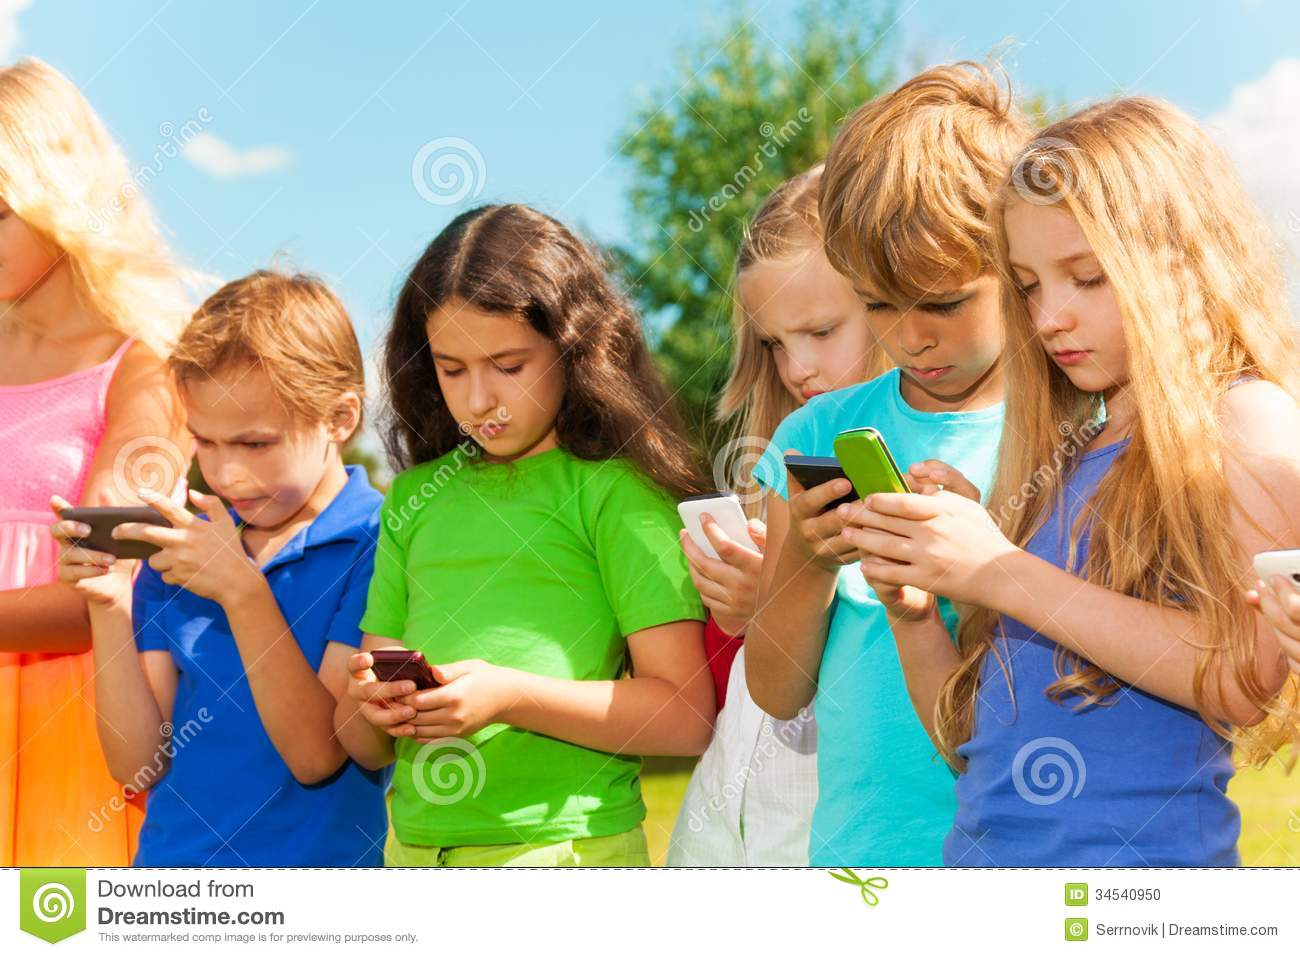 Of Sms Group Photo - 34540950 Kids Stock Image: